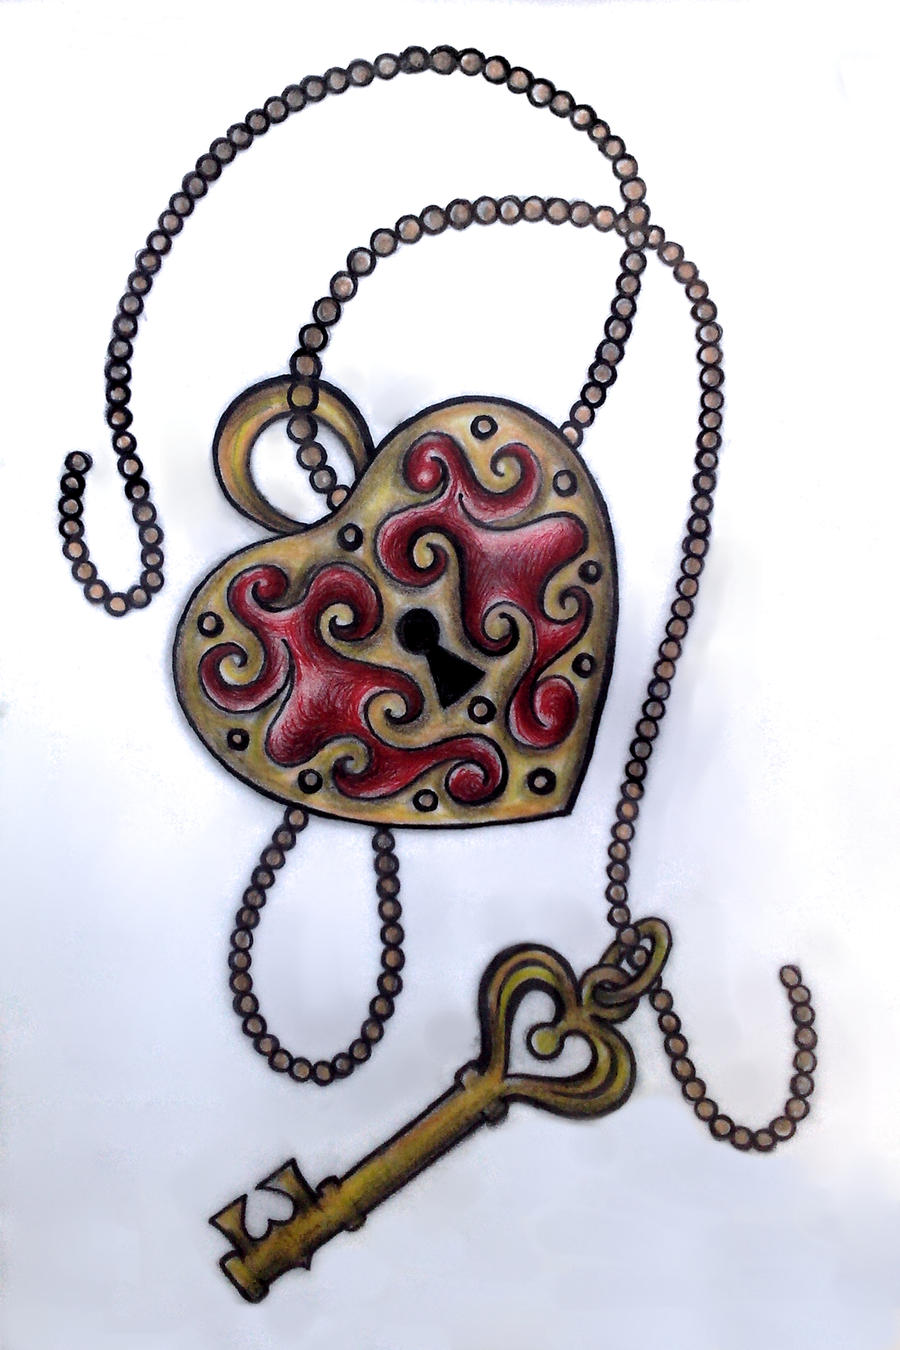 Heart Lock With Key Heart Lock Drawing At Getdrawings Com Free For